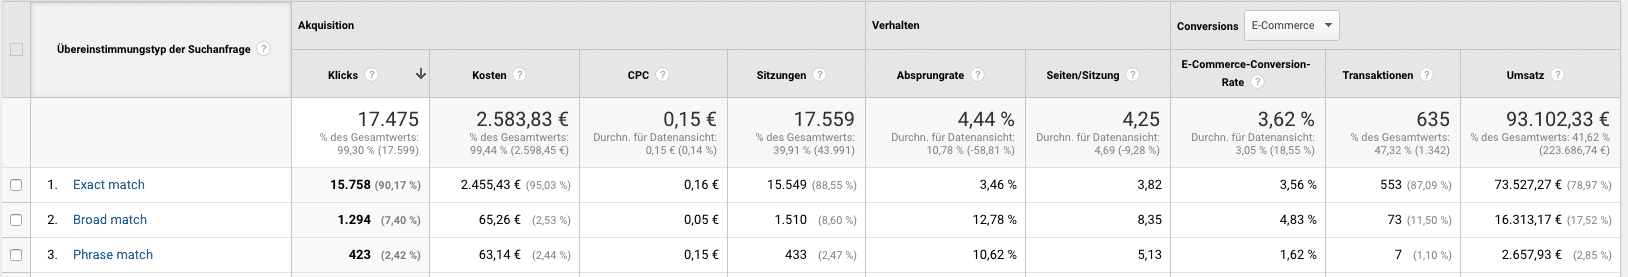 Metriken und Dimensionen in Google Analytics 2